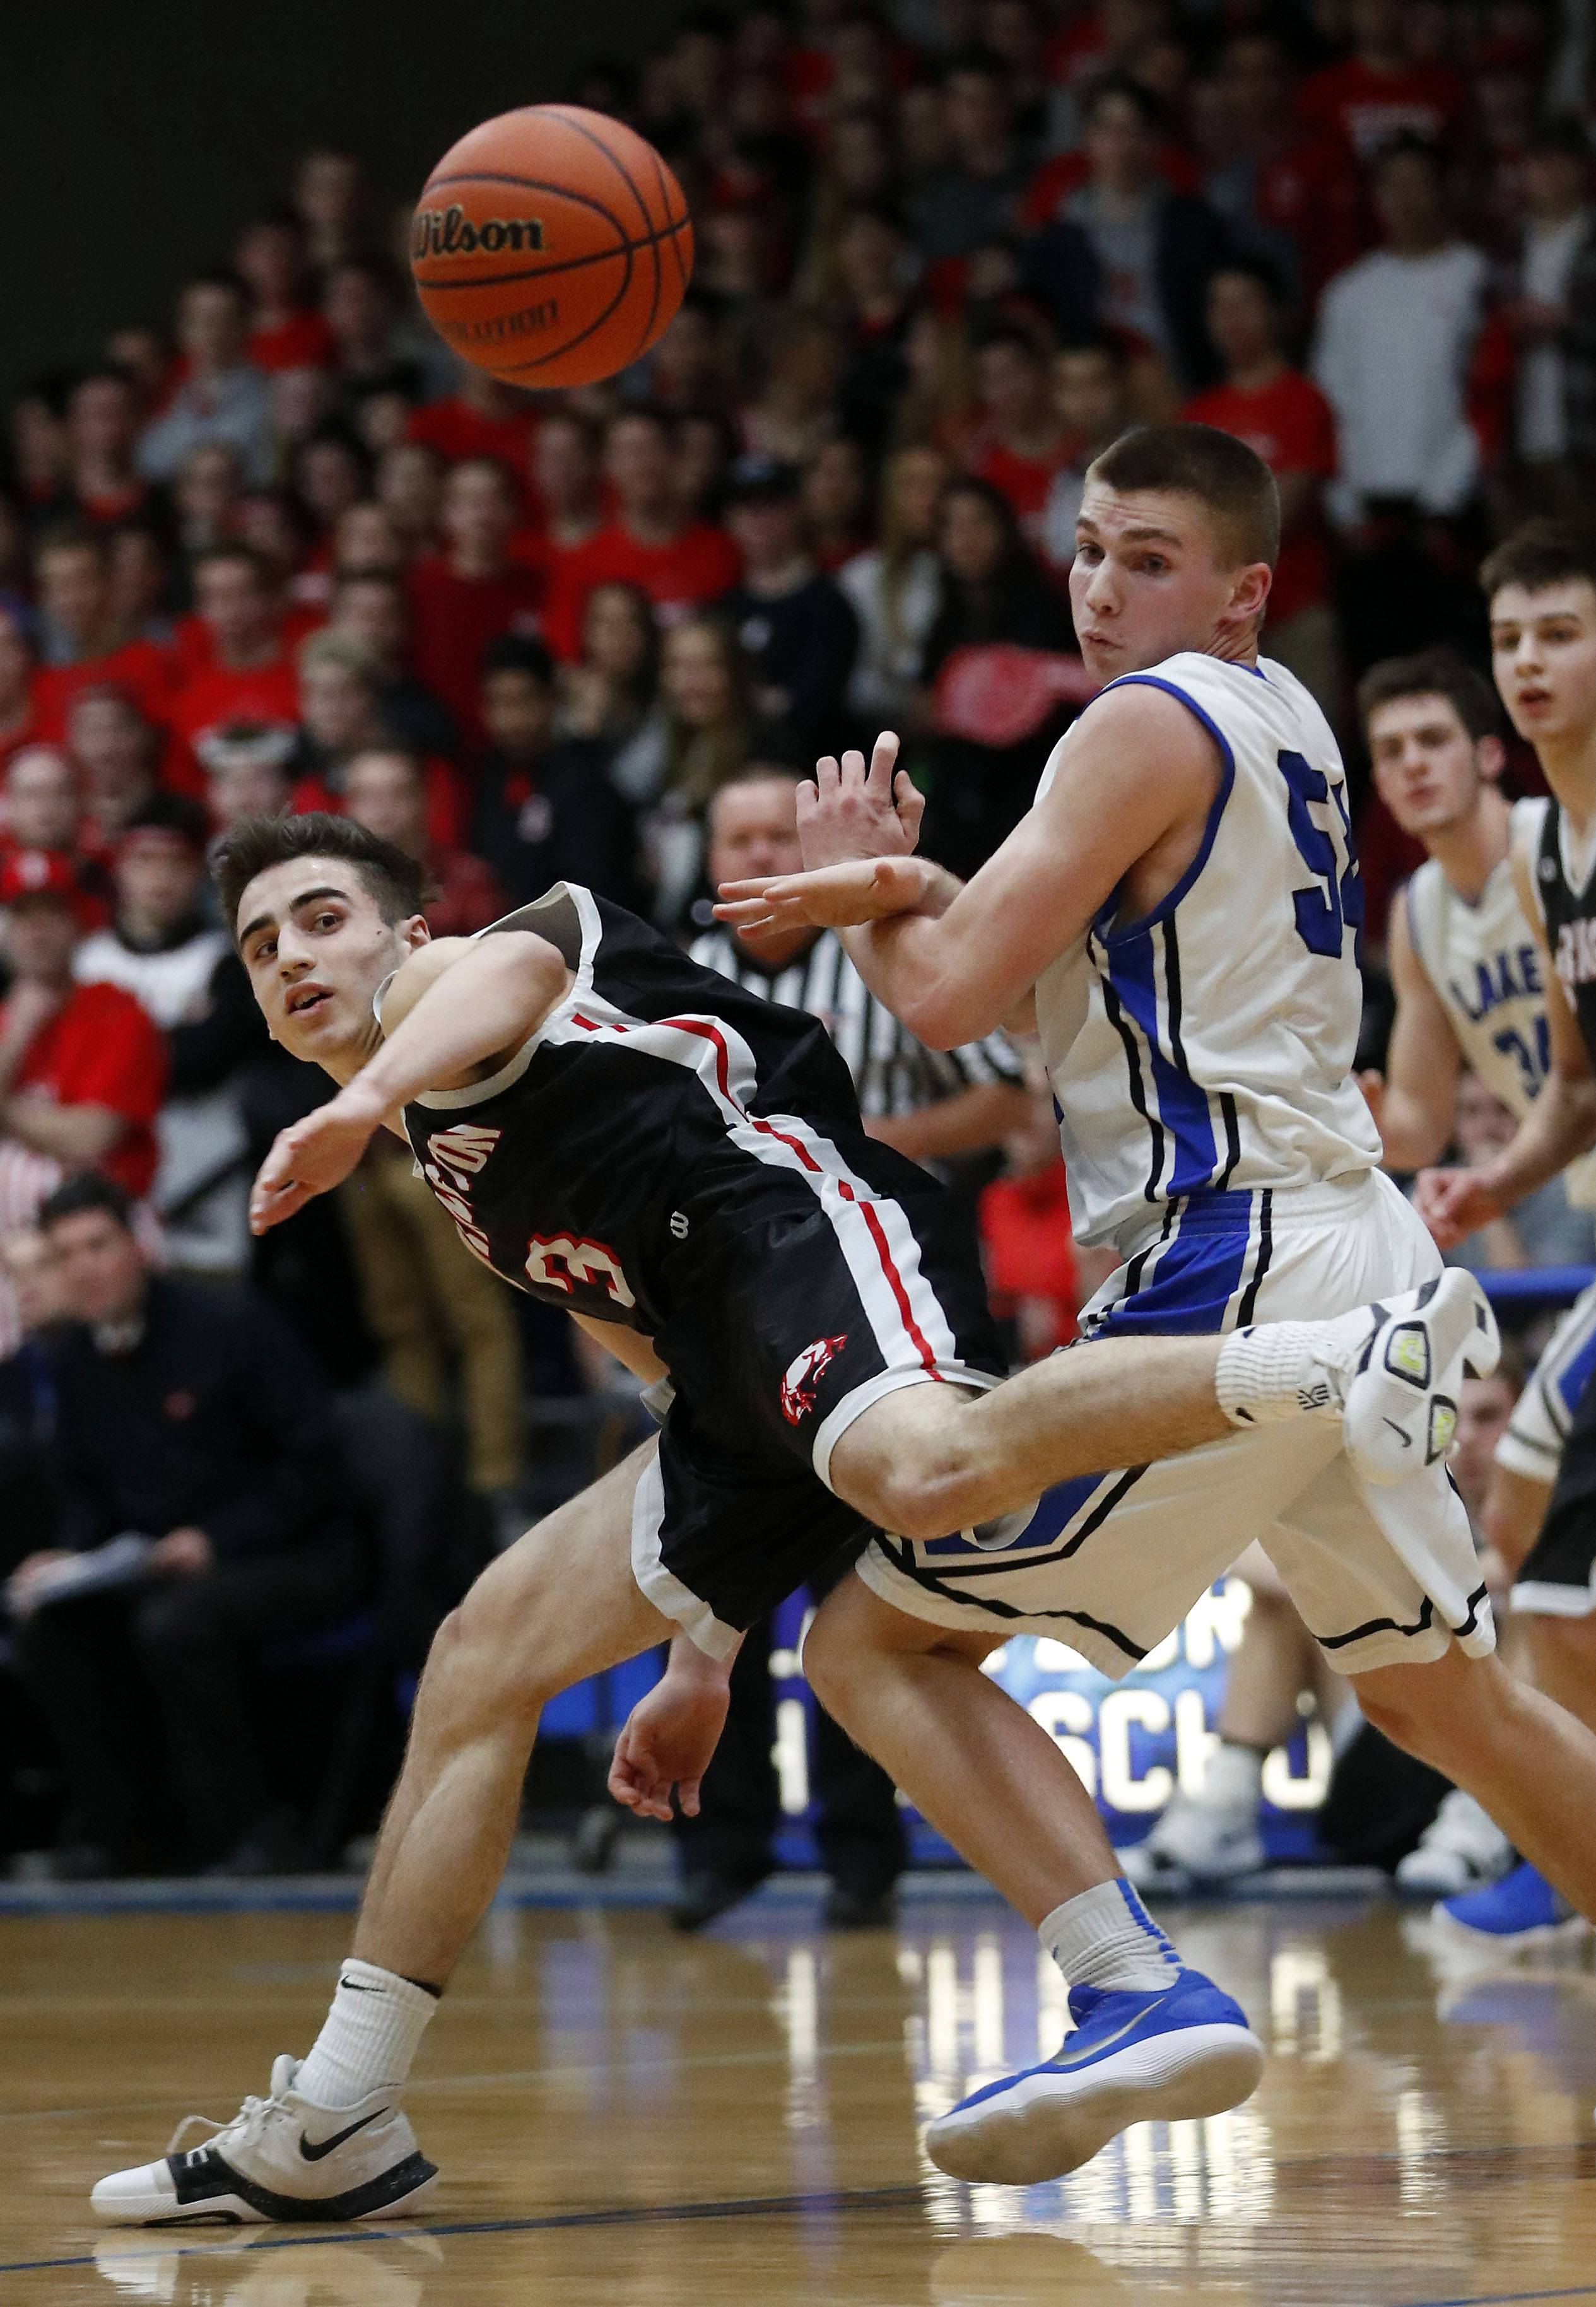 Barrington's Mark Johnson, left, and Lake Zurich's Peter DiCerbo battle for a rebound during the Class 4A sectional final at Lake Zurich on Friday.